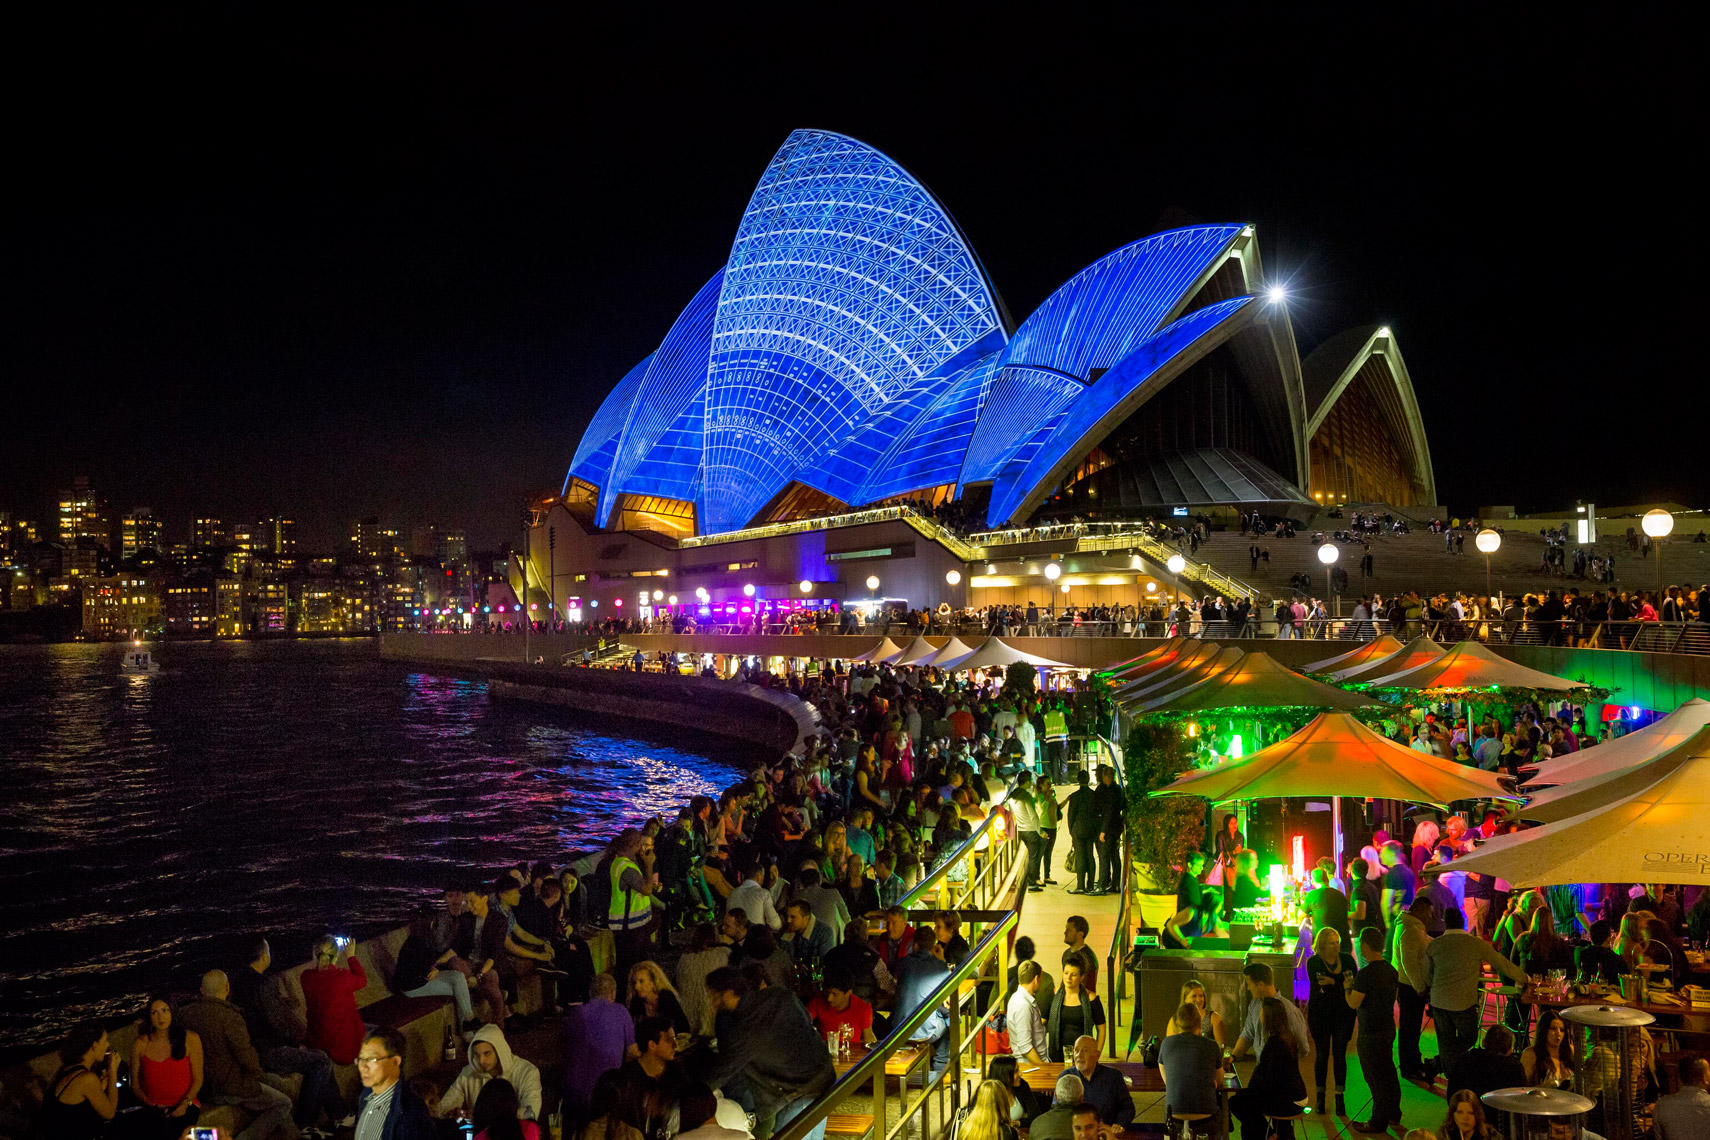 Vivid-Sydney-2014_Lighting-the-sails_Opera-Bar_James-Horan_DNSW_252